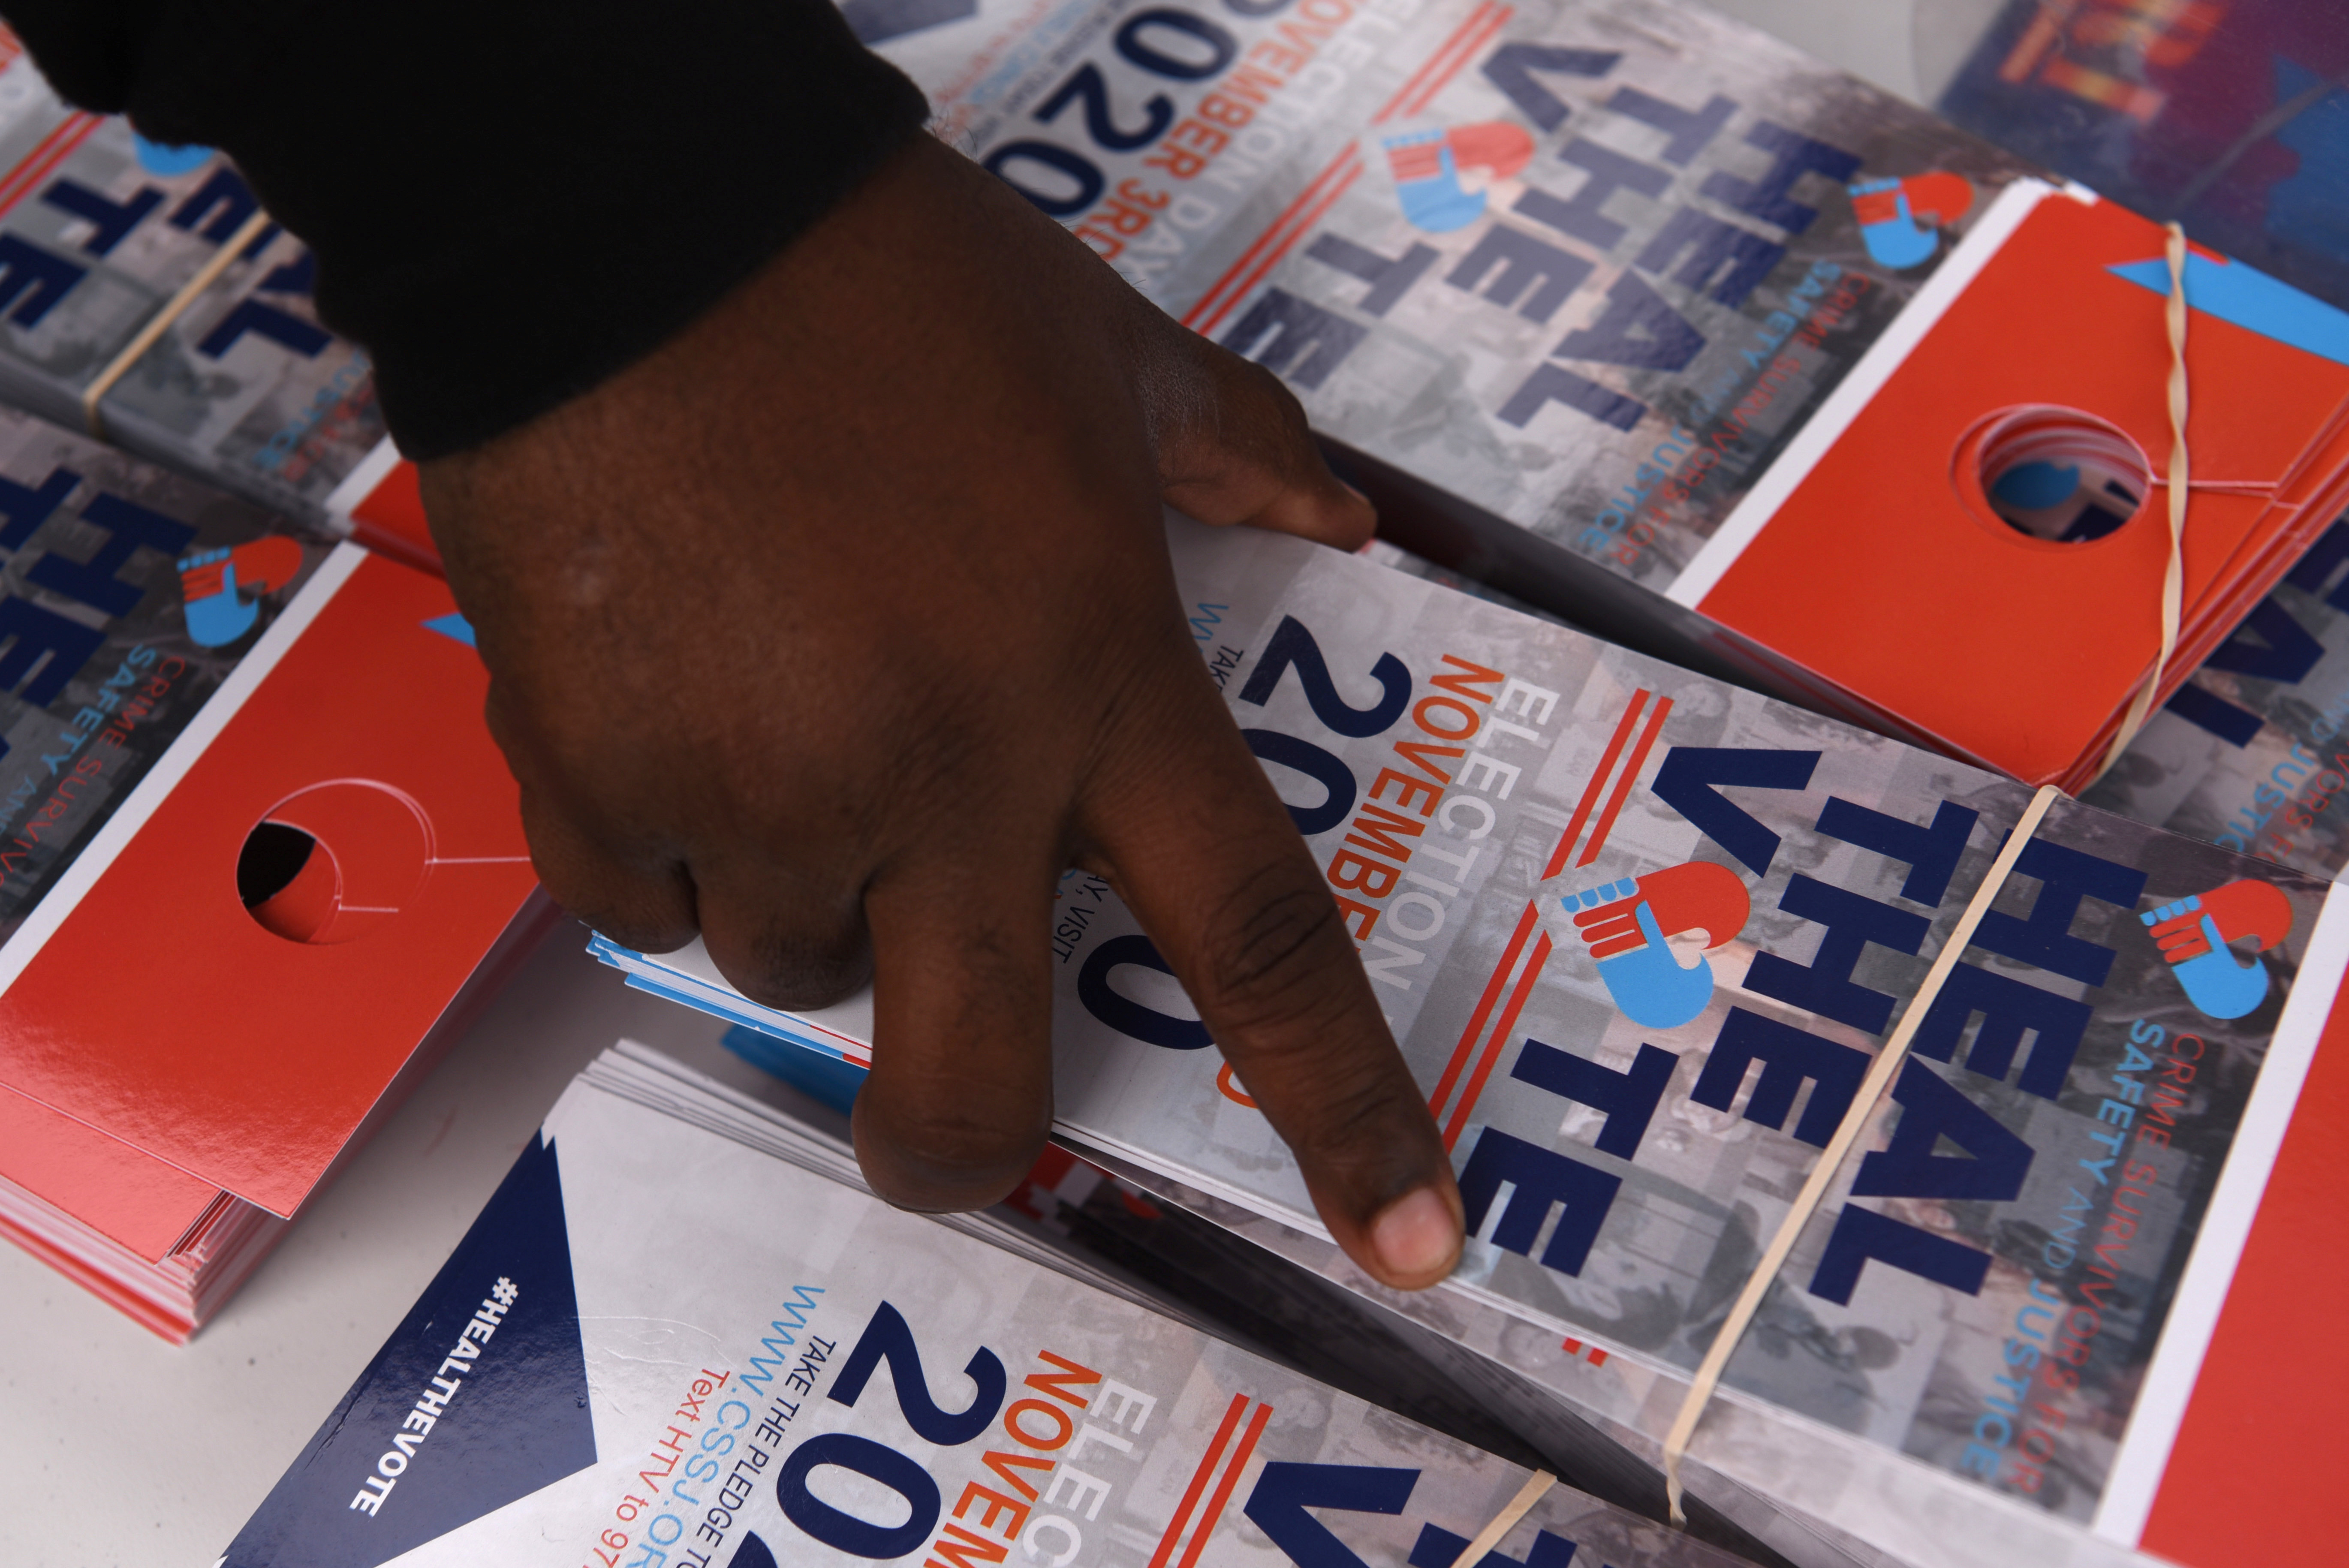 A man grabs flyers to hang on doorhandles at an event hosted by the NAACP to encourage community members to vote in the upcoming presidential election in Houston, Texas, U.S., October 24, 2020. Picture taken October 24, 2020.   REUTERS/Callaghan O'Hare